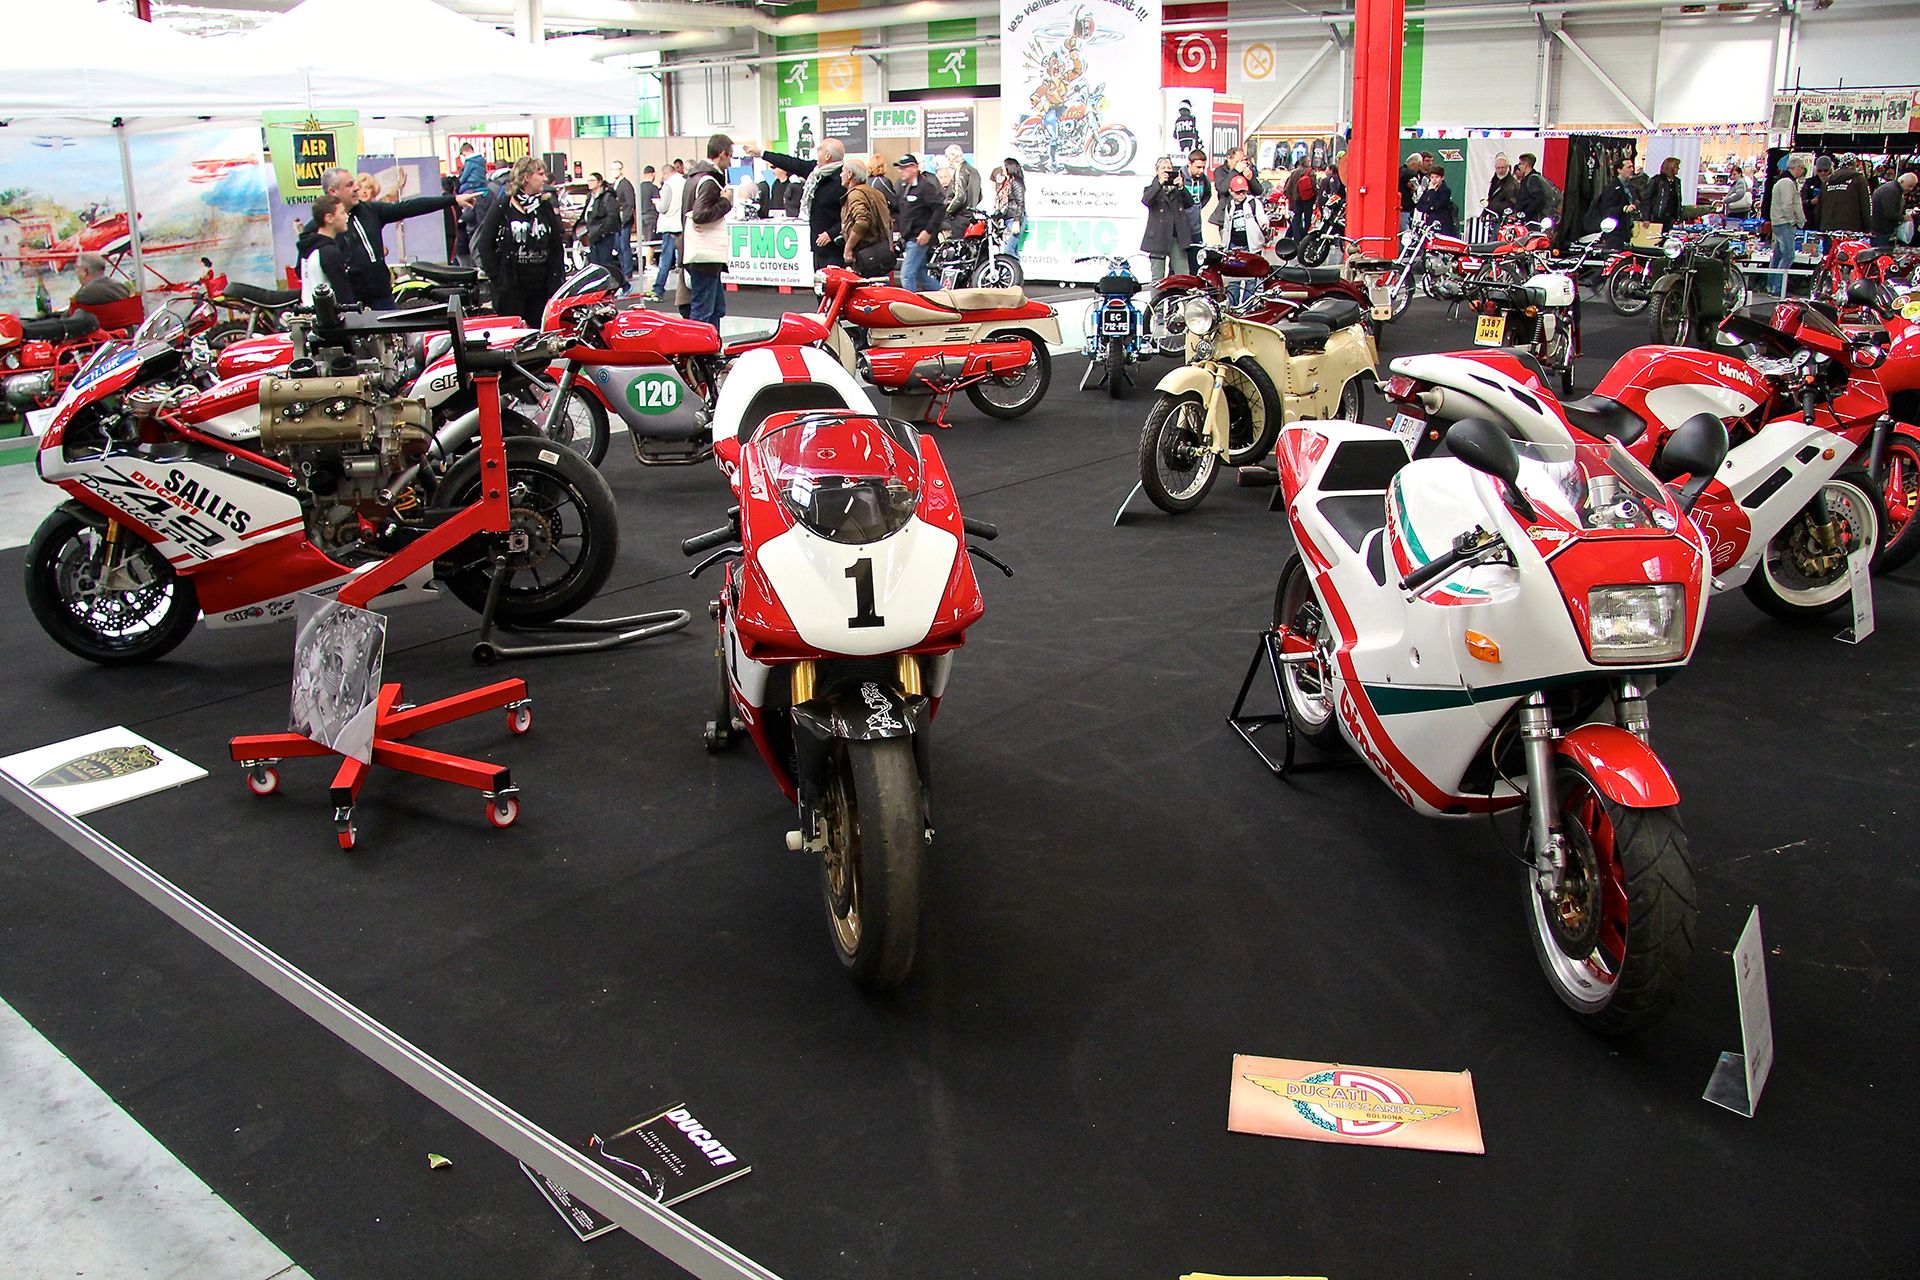 Expo moto - Automedon 2016 - photo Ludo Ferrari